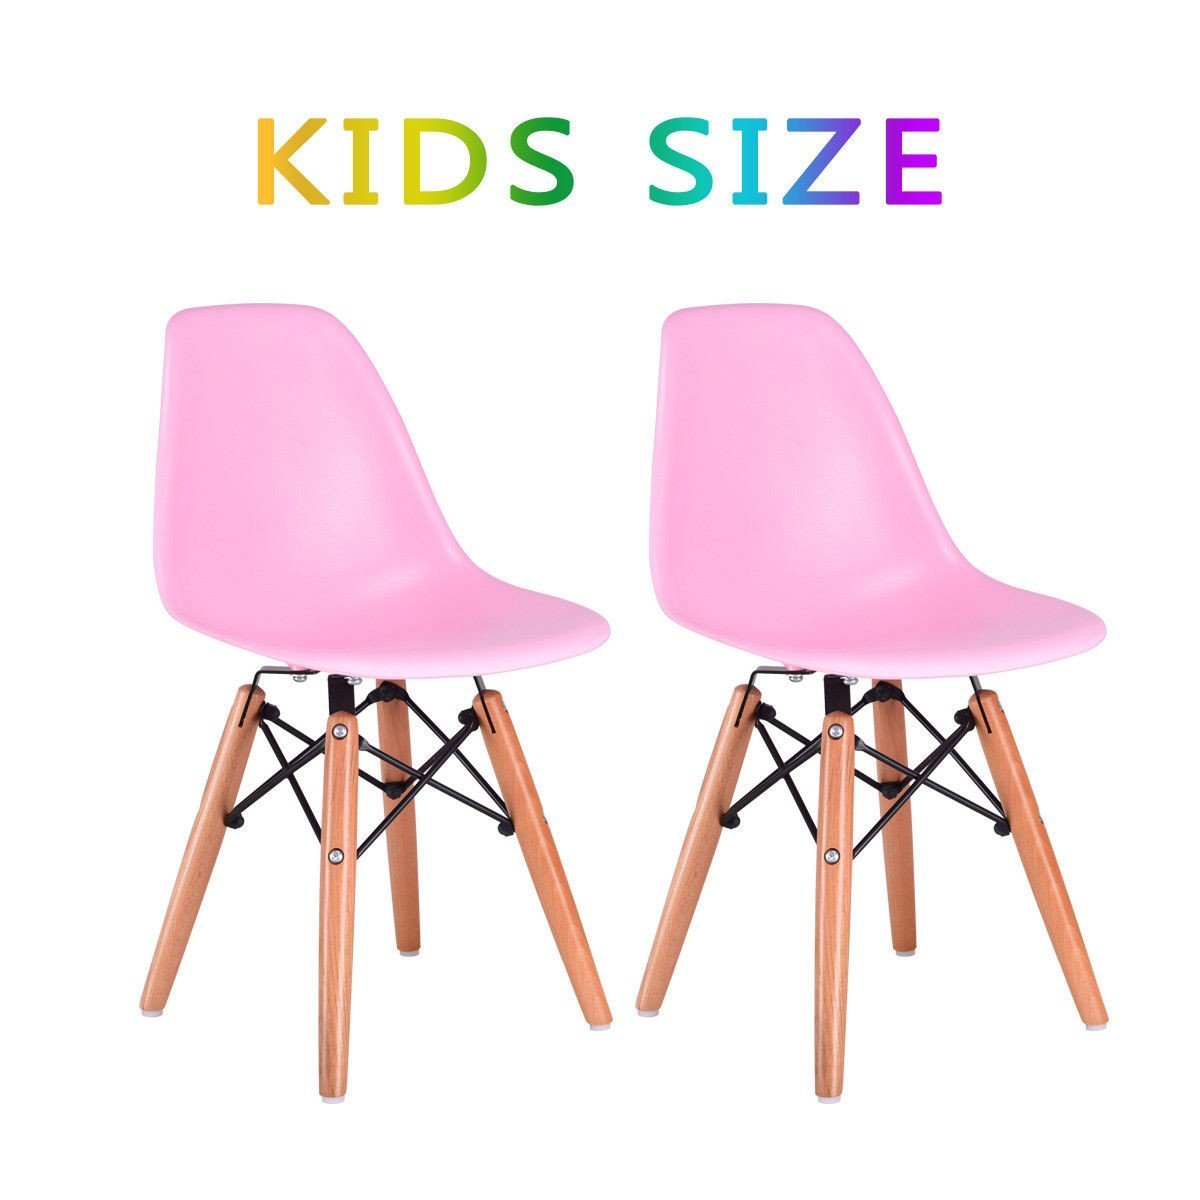 Custpromo Set of 2 Kids White Dining Chairs Mid Century Shell Chair Wooden Legs Armless Chairs (Pink)